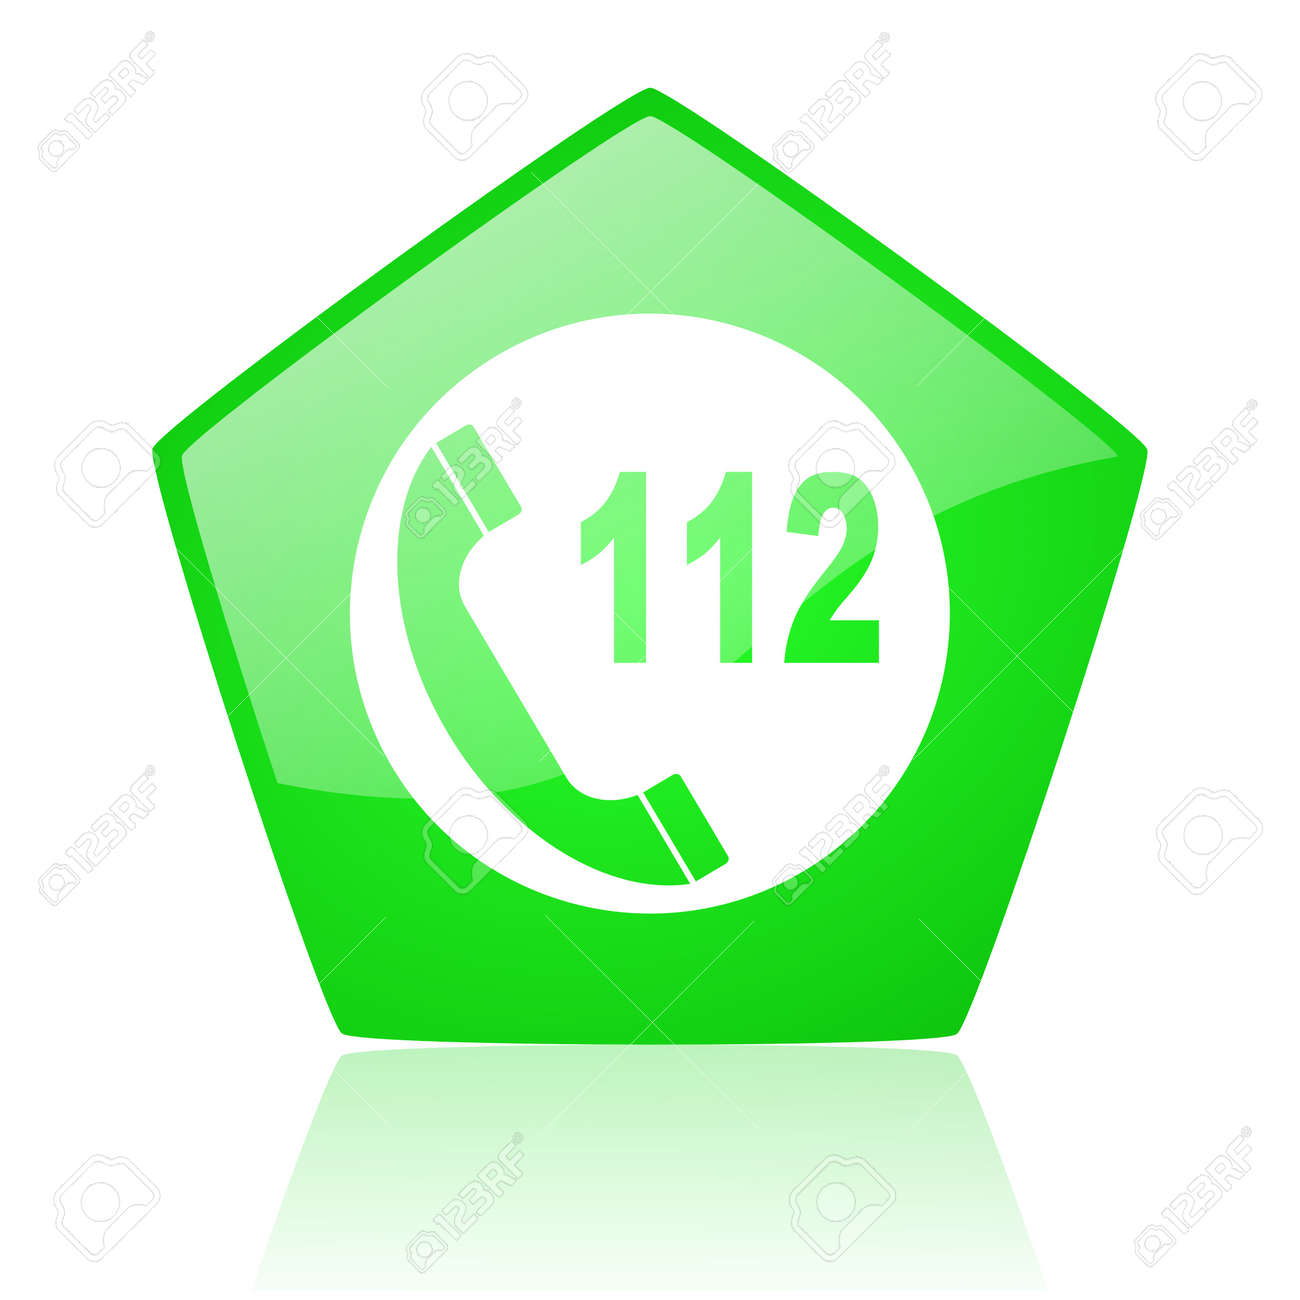 emergency call green pentagon web glossy icon Stock Photo - 19228245